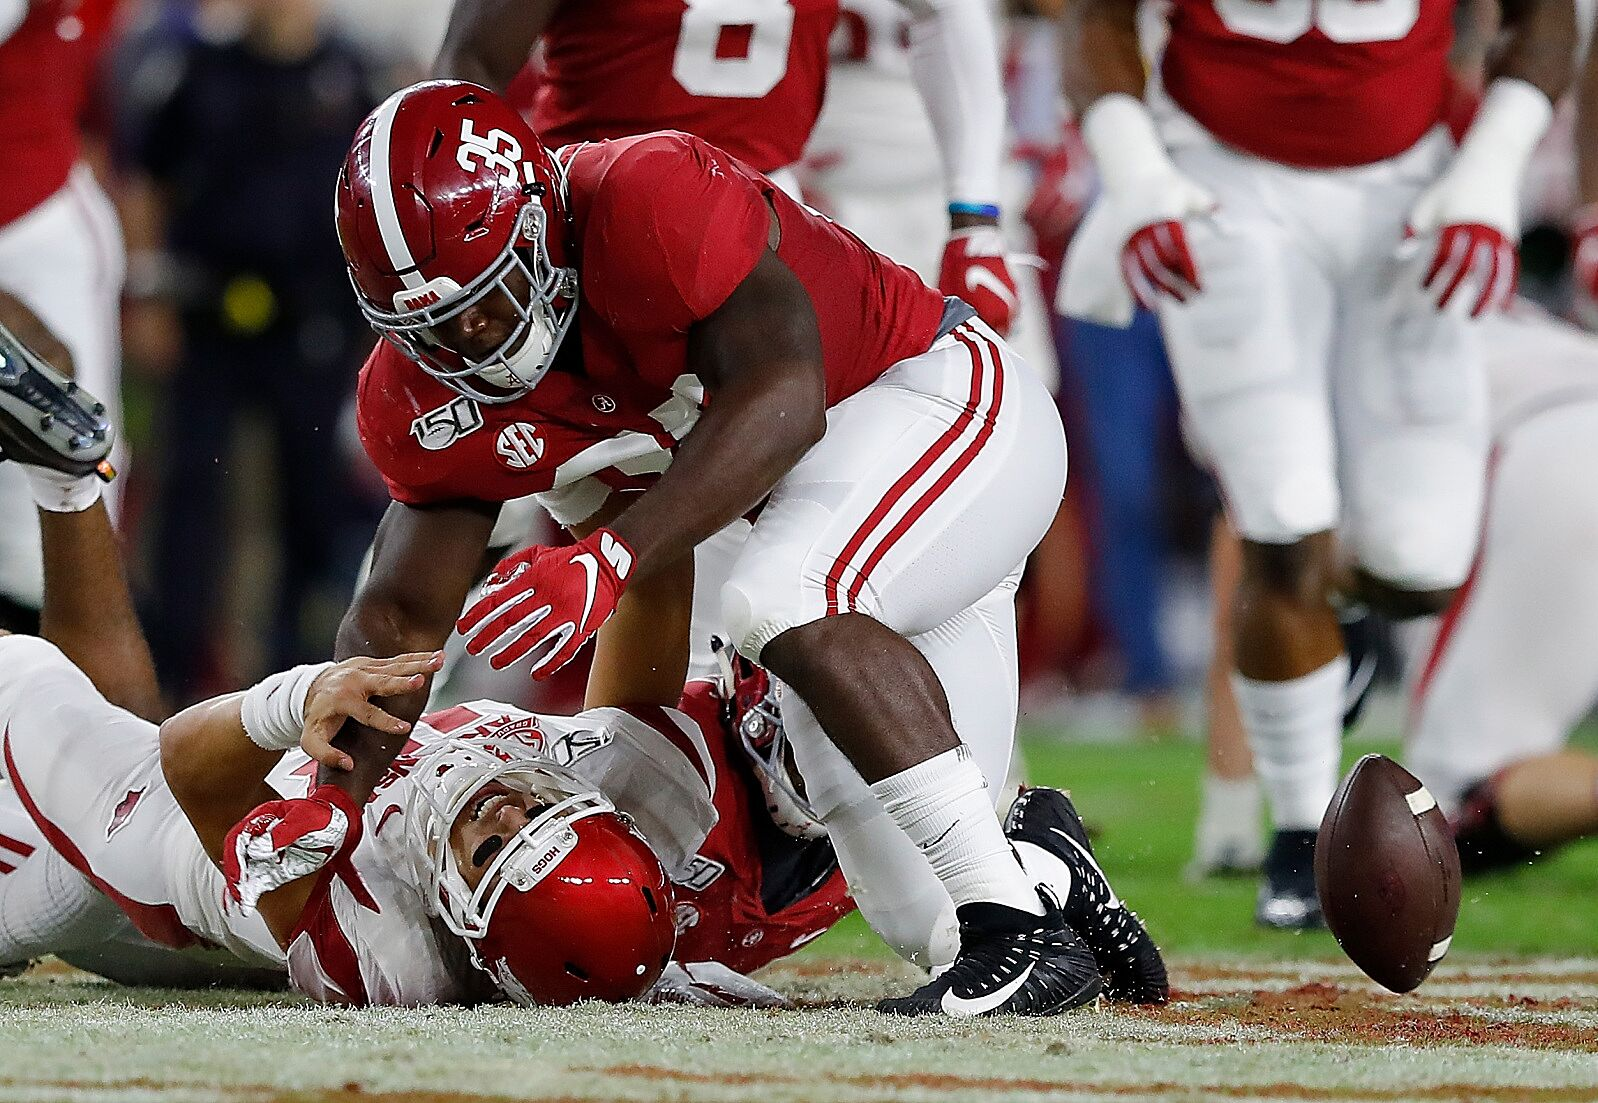 Reasons why the Crimson Tide will field an Elite Defense in 2020